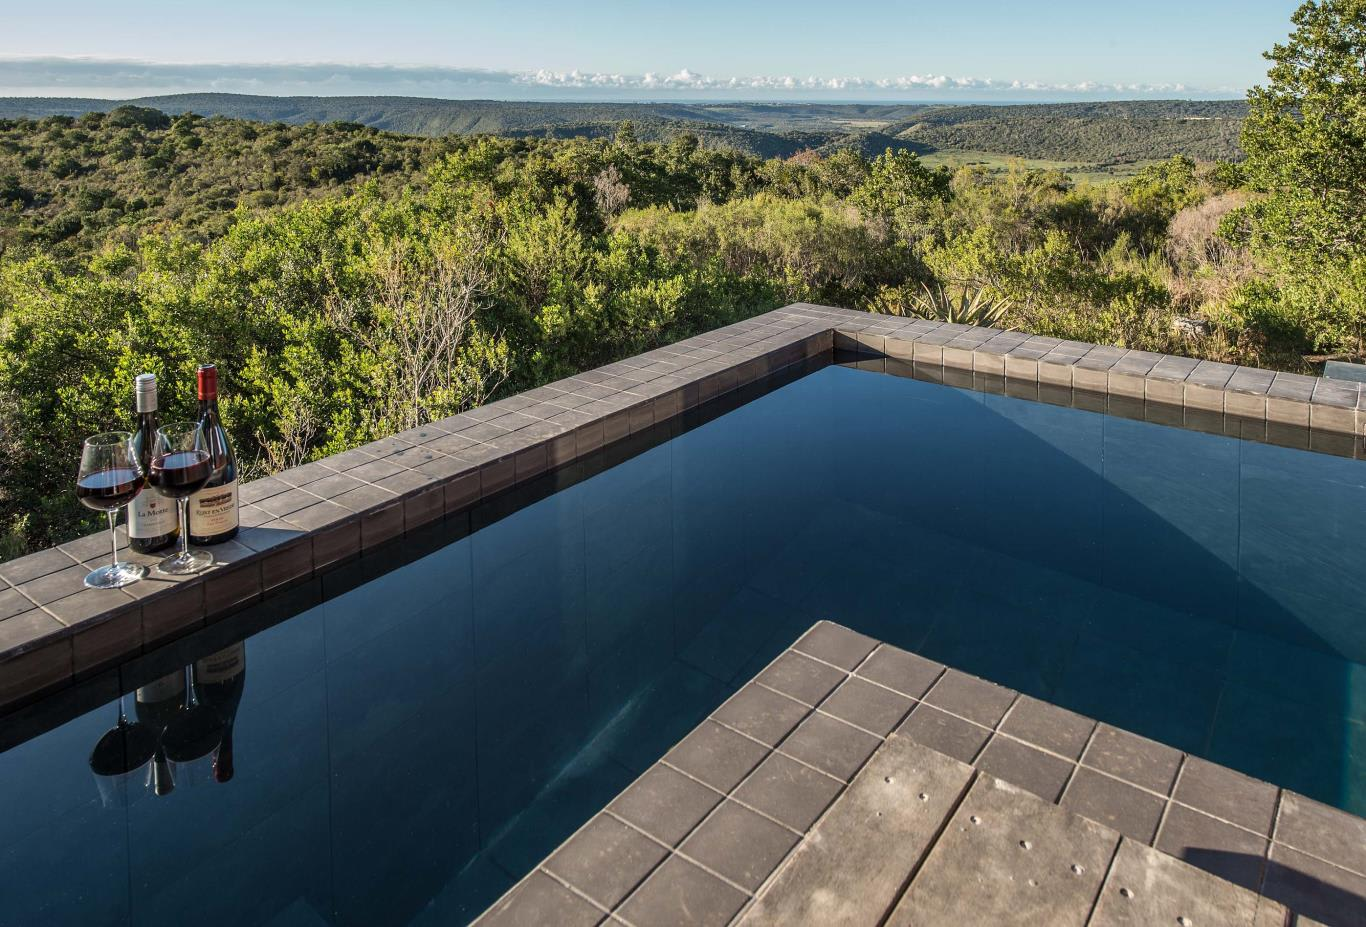 Plunge pool for each suite